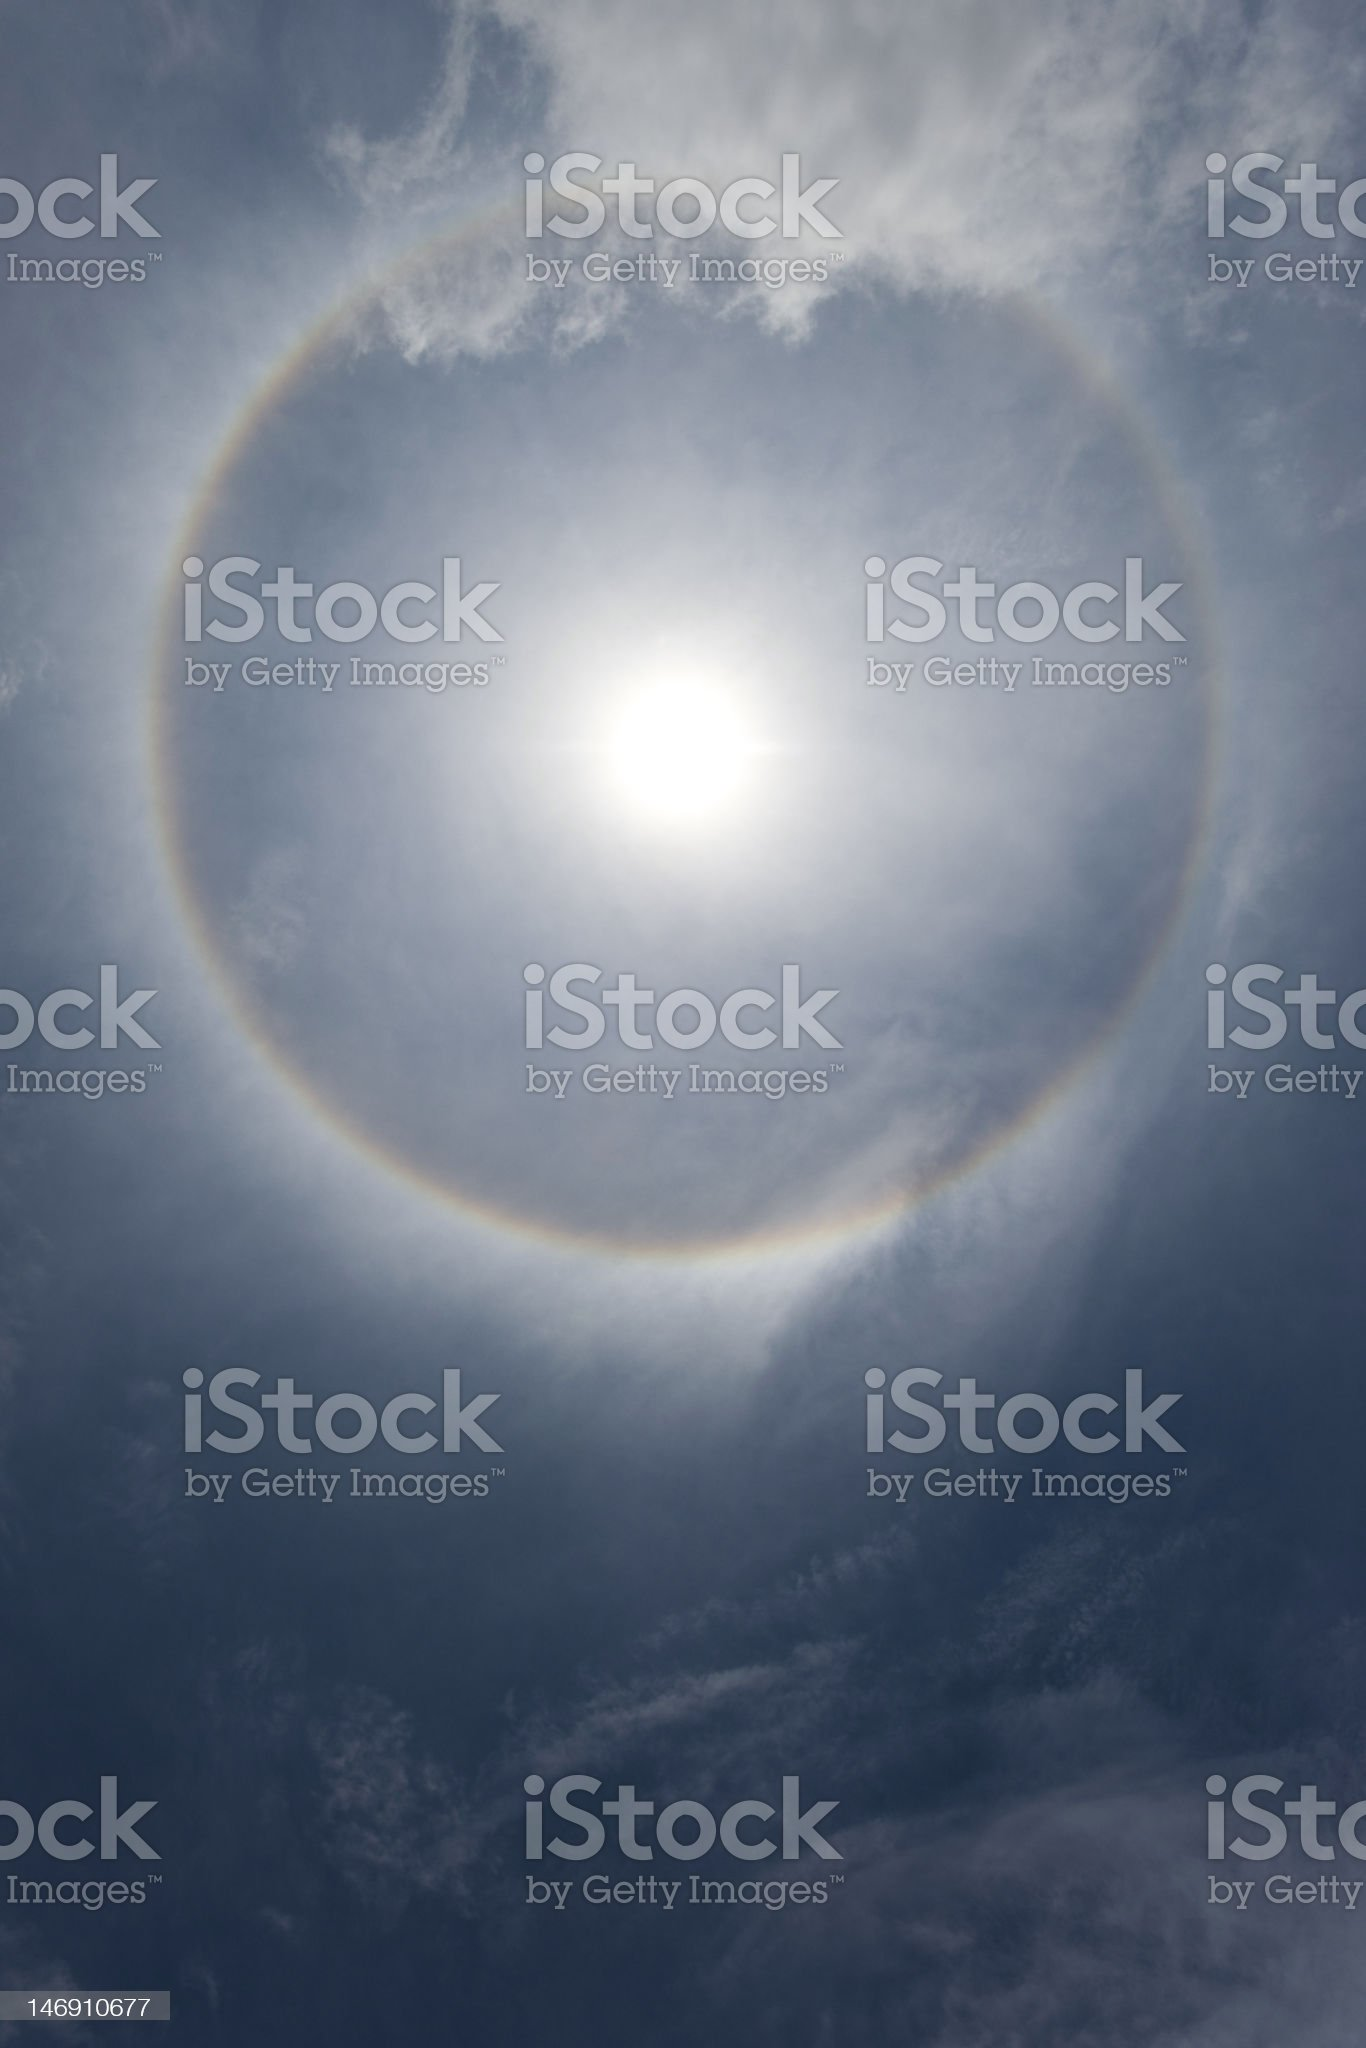 Halo with some extra space on the bottom royalty-free stock photo